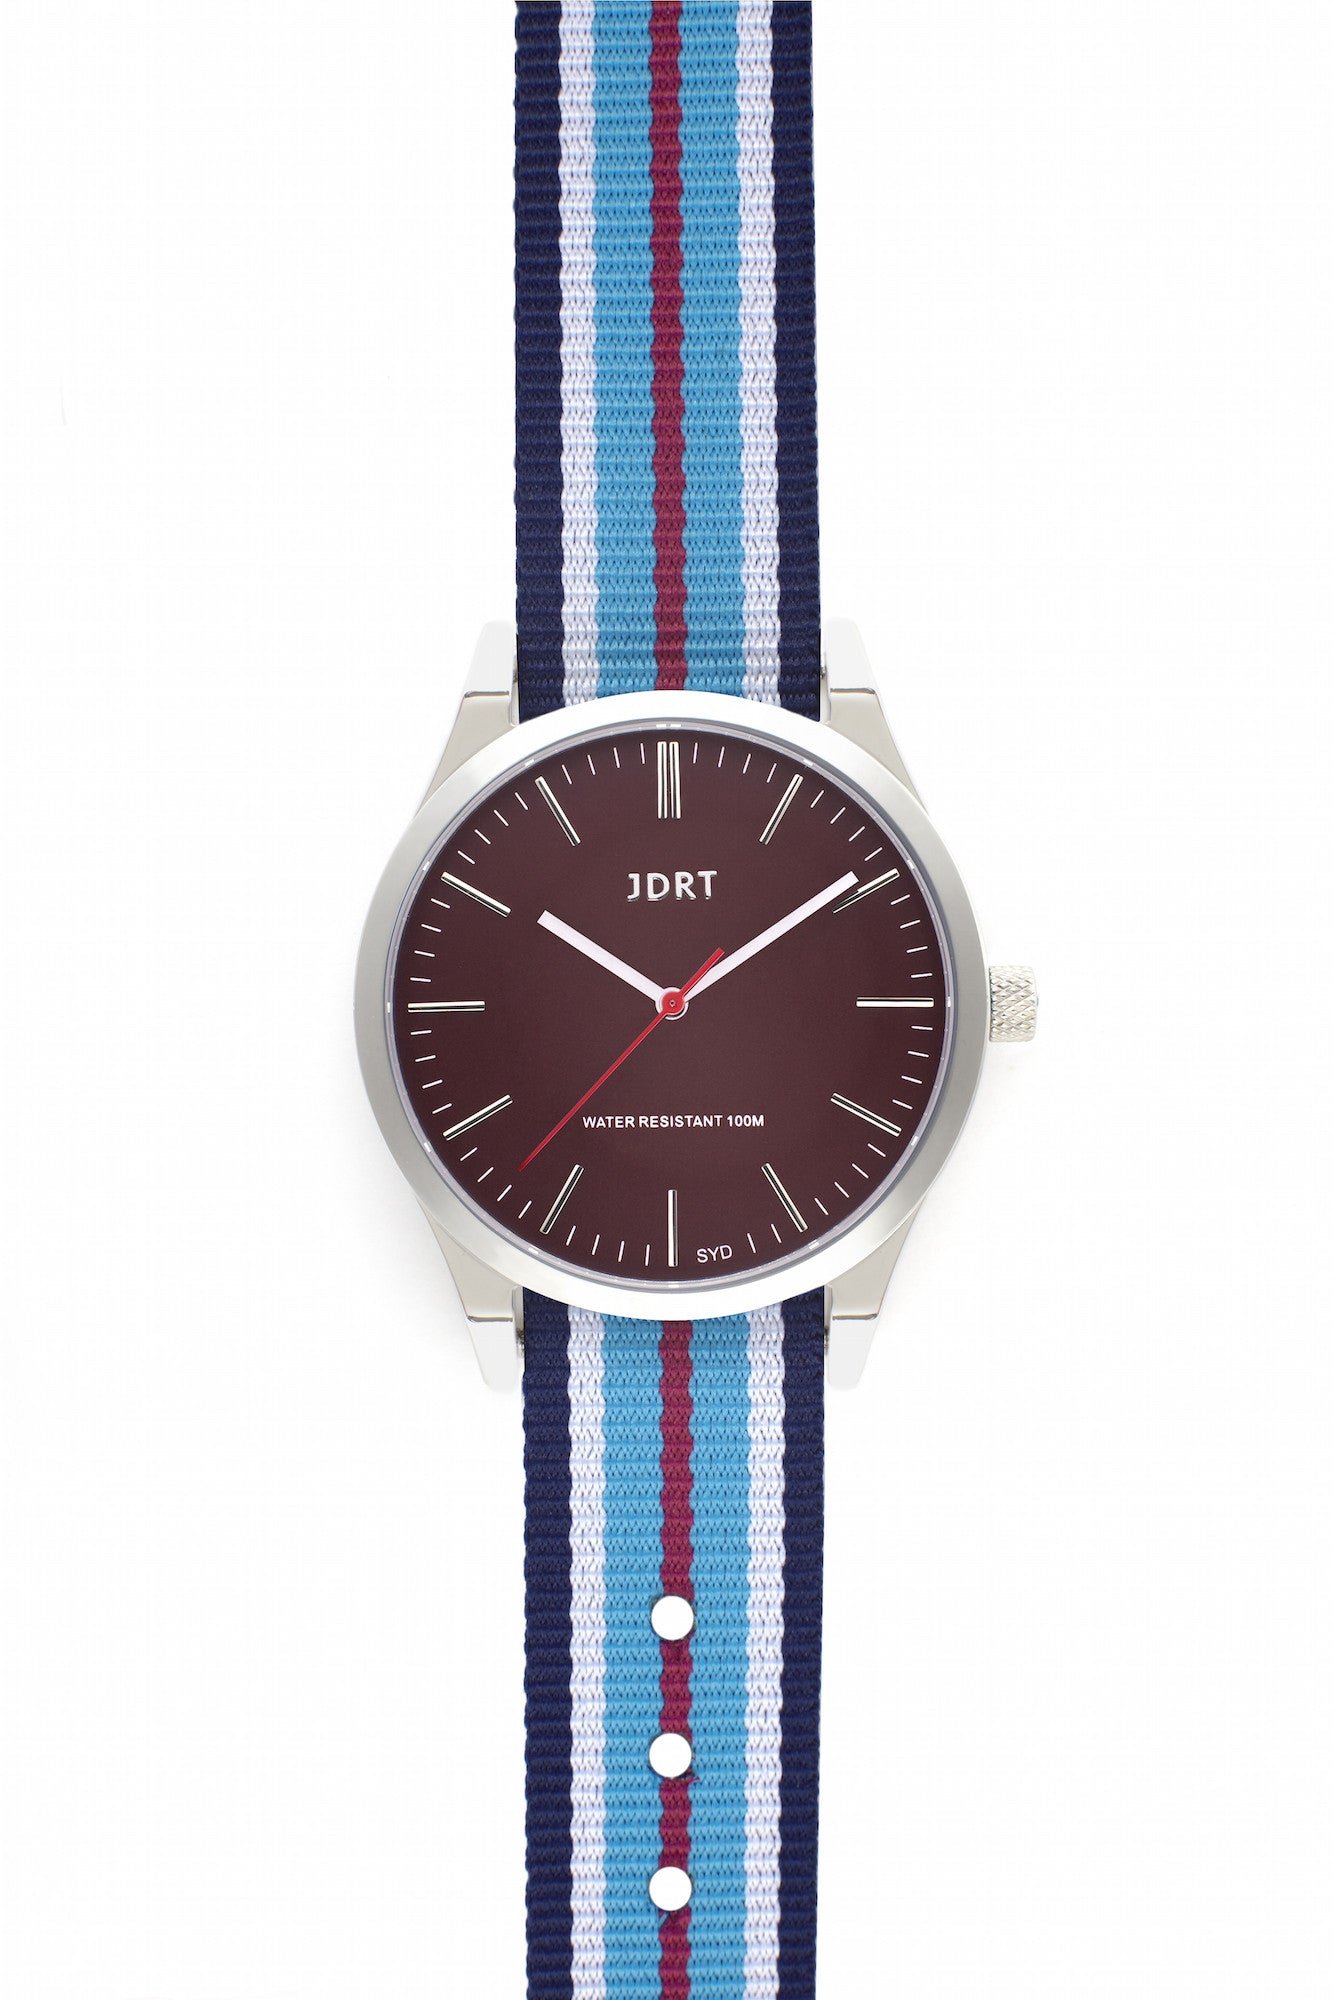 Oxblood Face with Darlinghurst NATO Watch Band